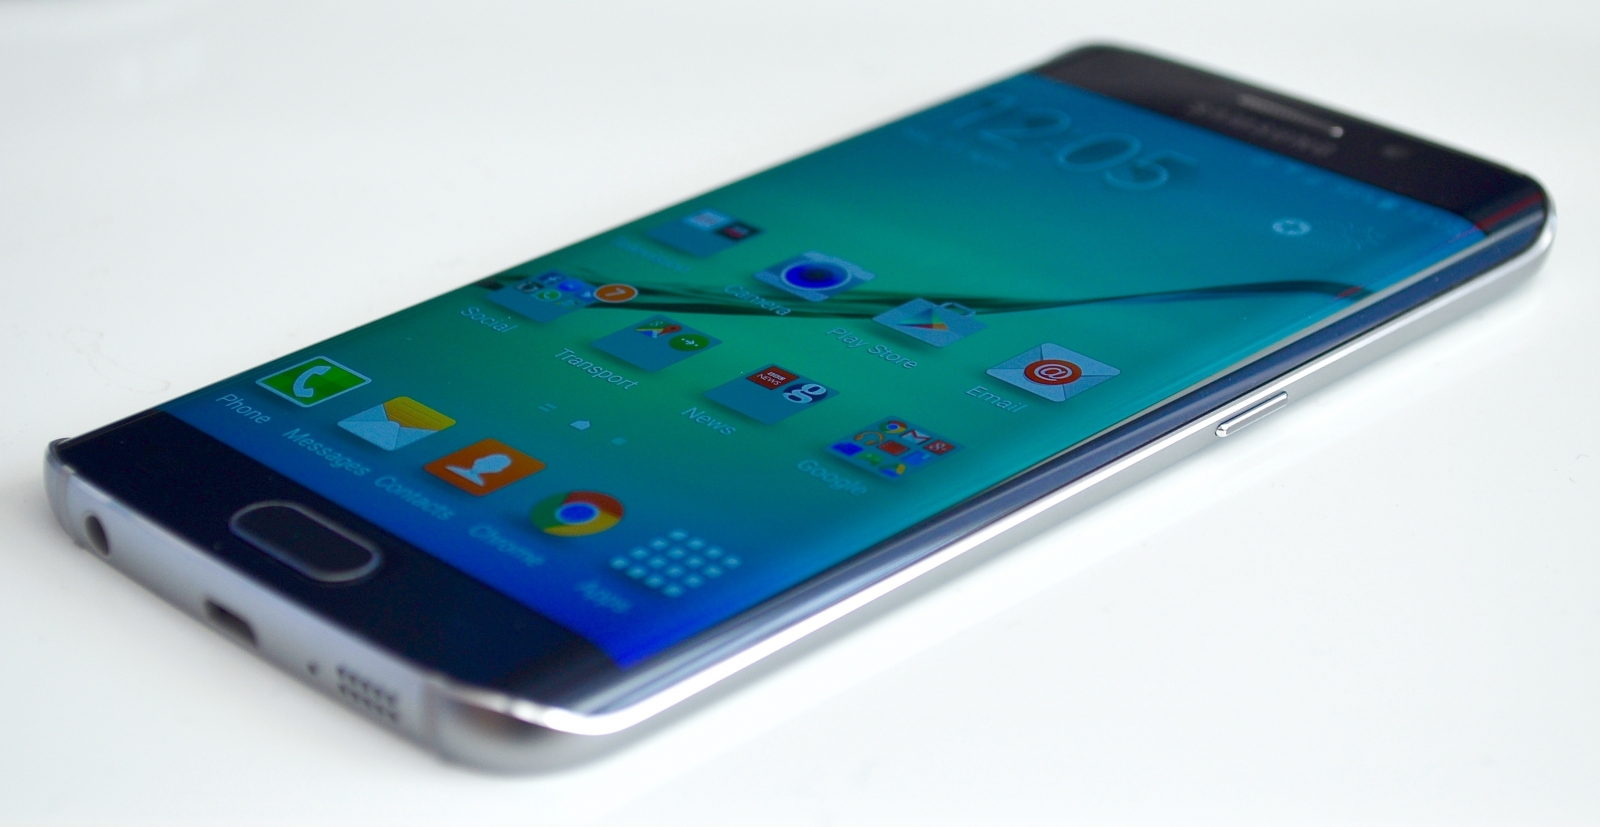 samsung galaxy s6 edge review samsung gets its mojo back. Black Bedroom Furniture Sets. Home Design Ideas